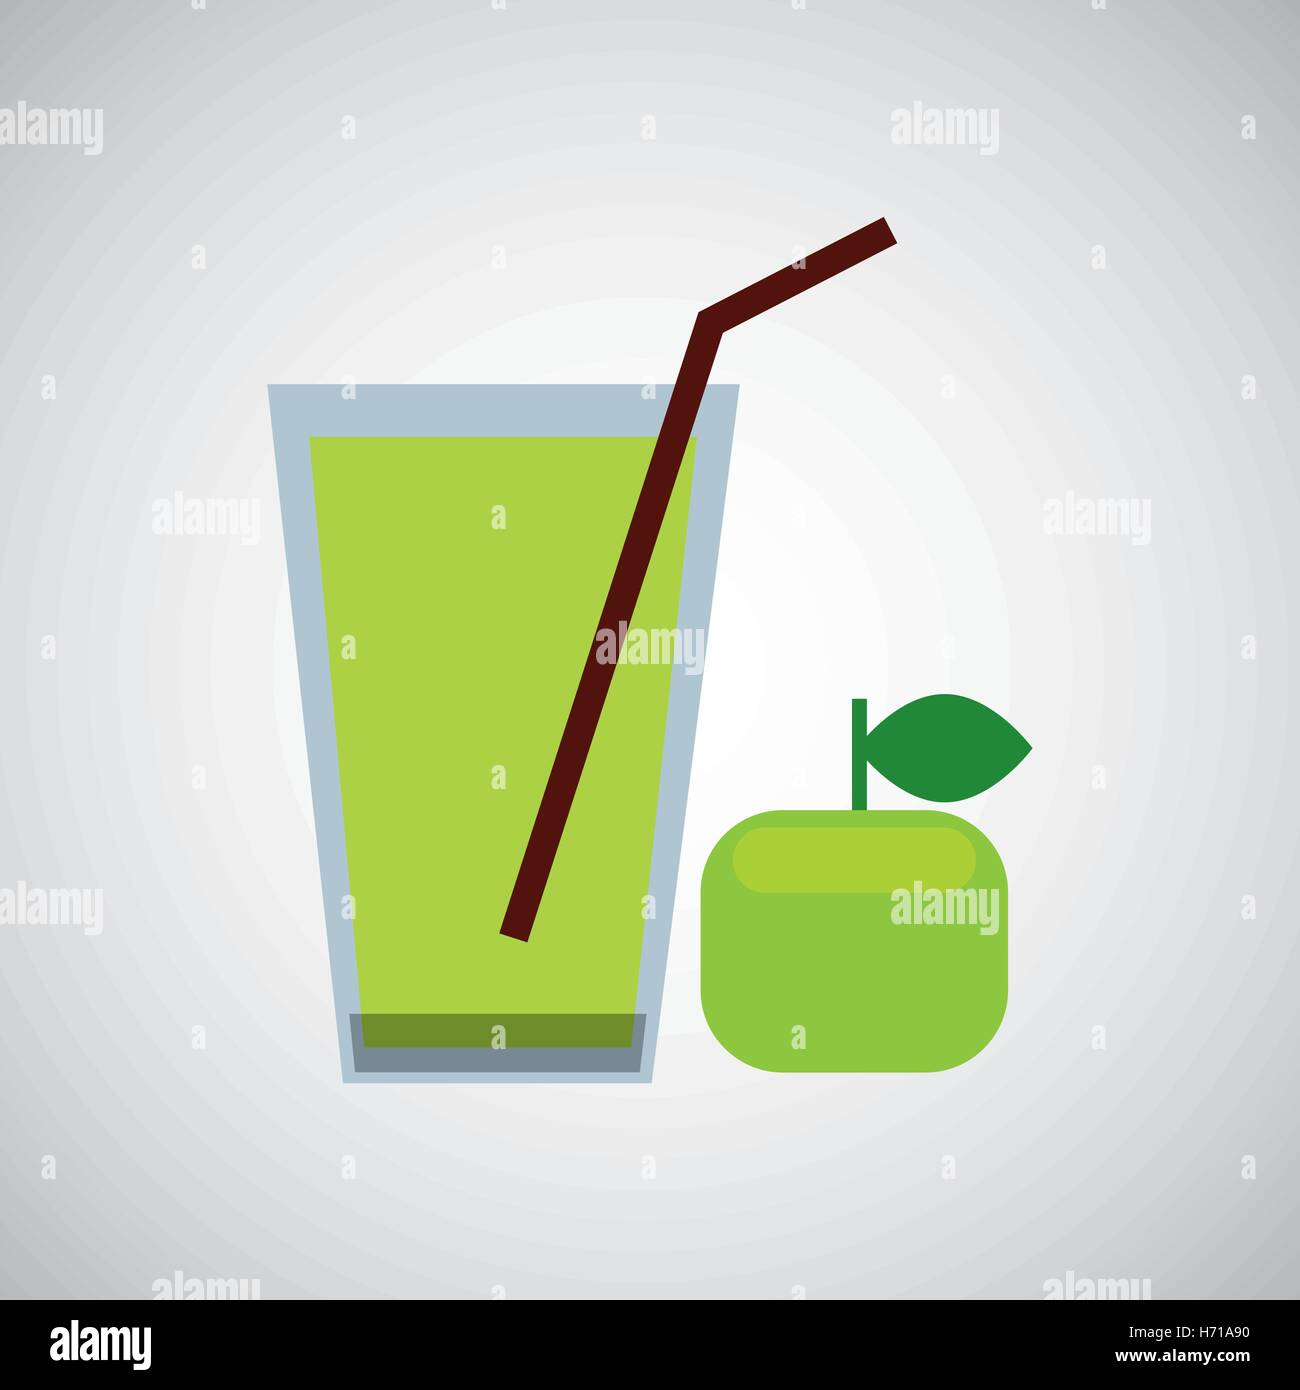 Glass juice cups design - Stock Vector Fresh Juice Green Apple And Cup Glass Straw Design Vector Illustration Eps 10